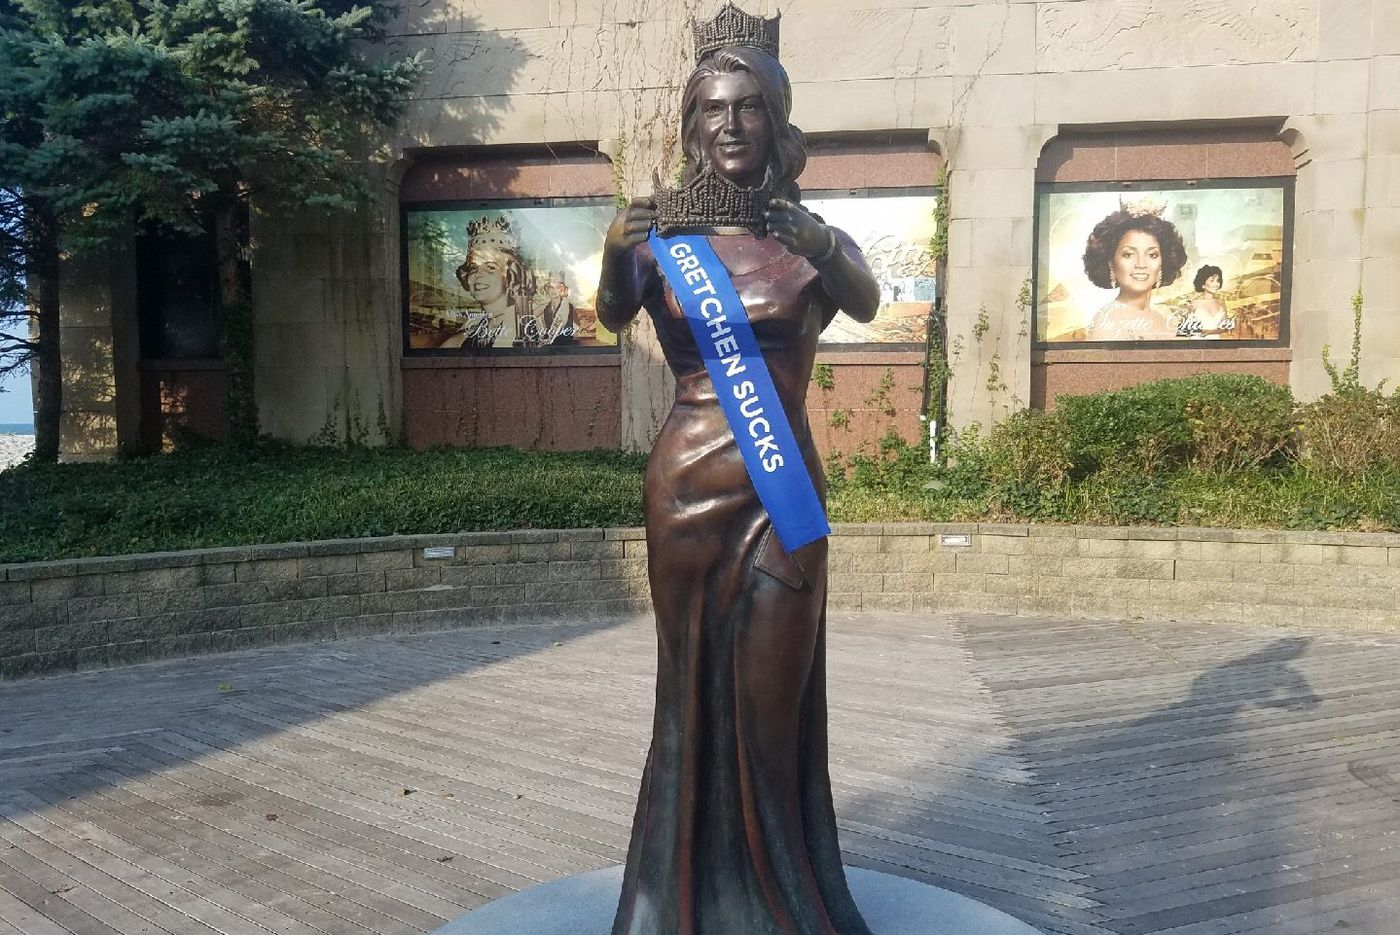 'Gretchen Sucks' sash placed on Miss America statue in Atlantic City; police investigating